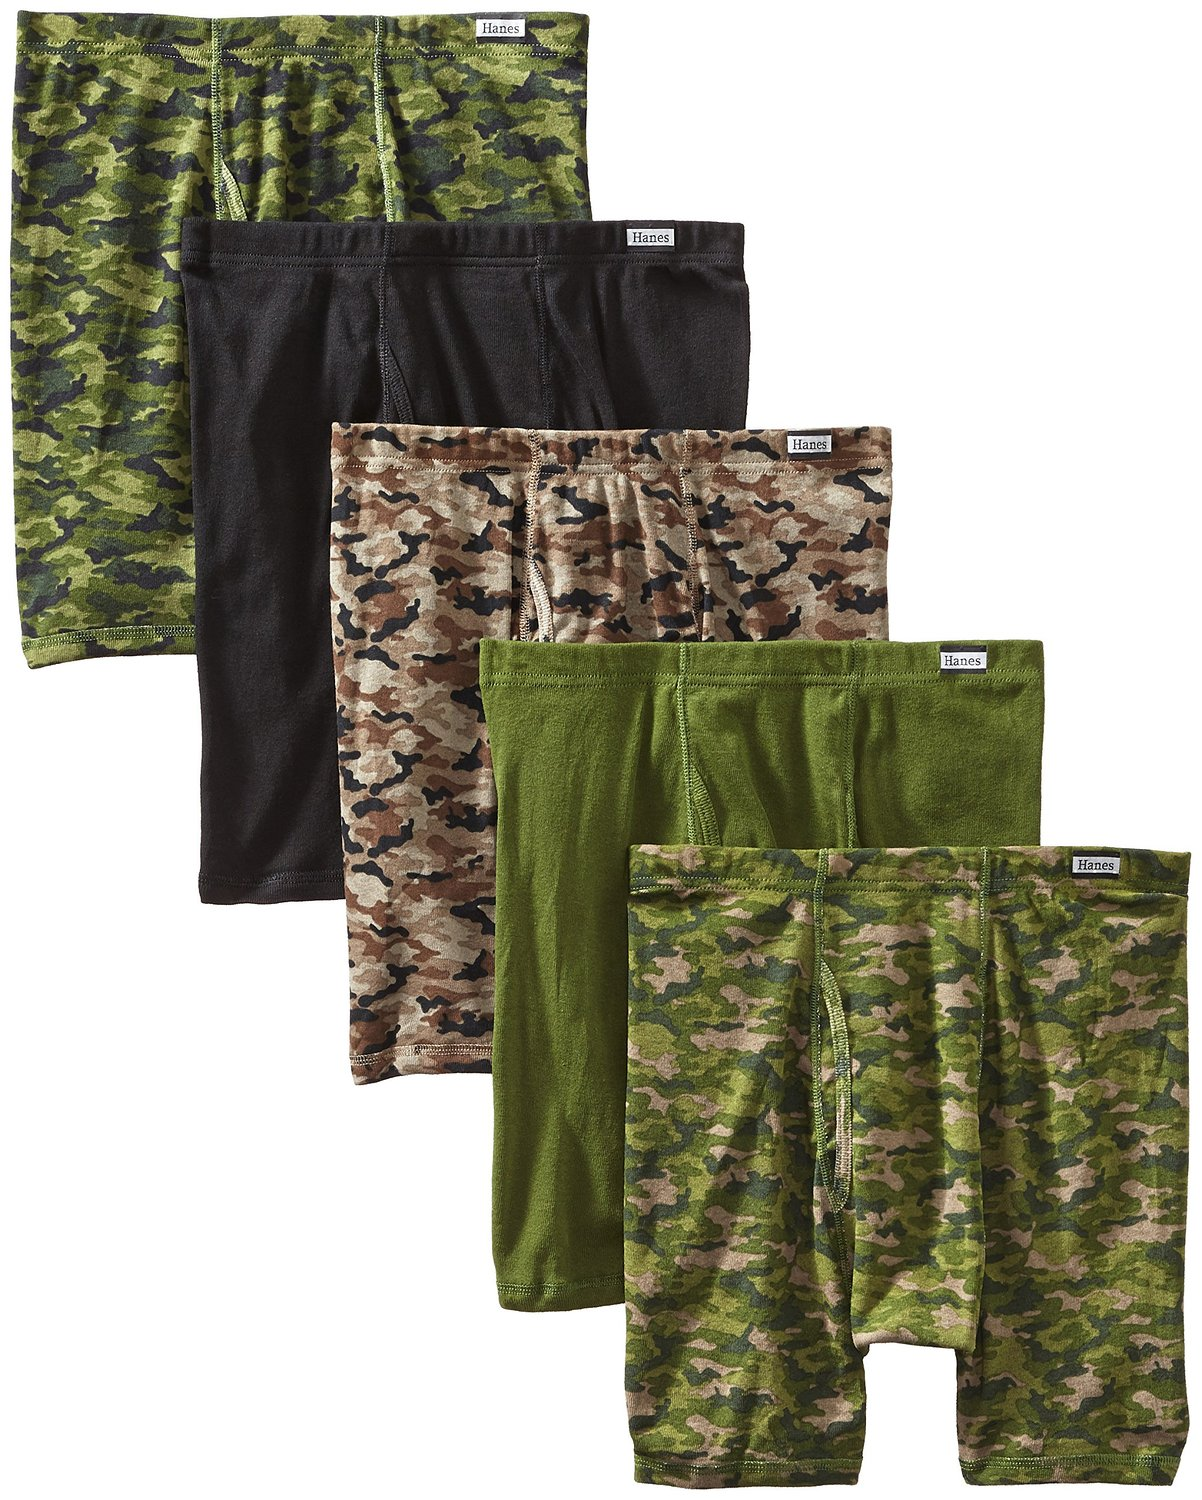 Hanes Men's 5-Pack Comfort Soft Printed Boxer Briefs at Amazon Men's Clothing store